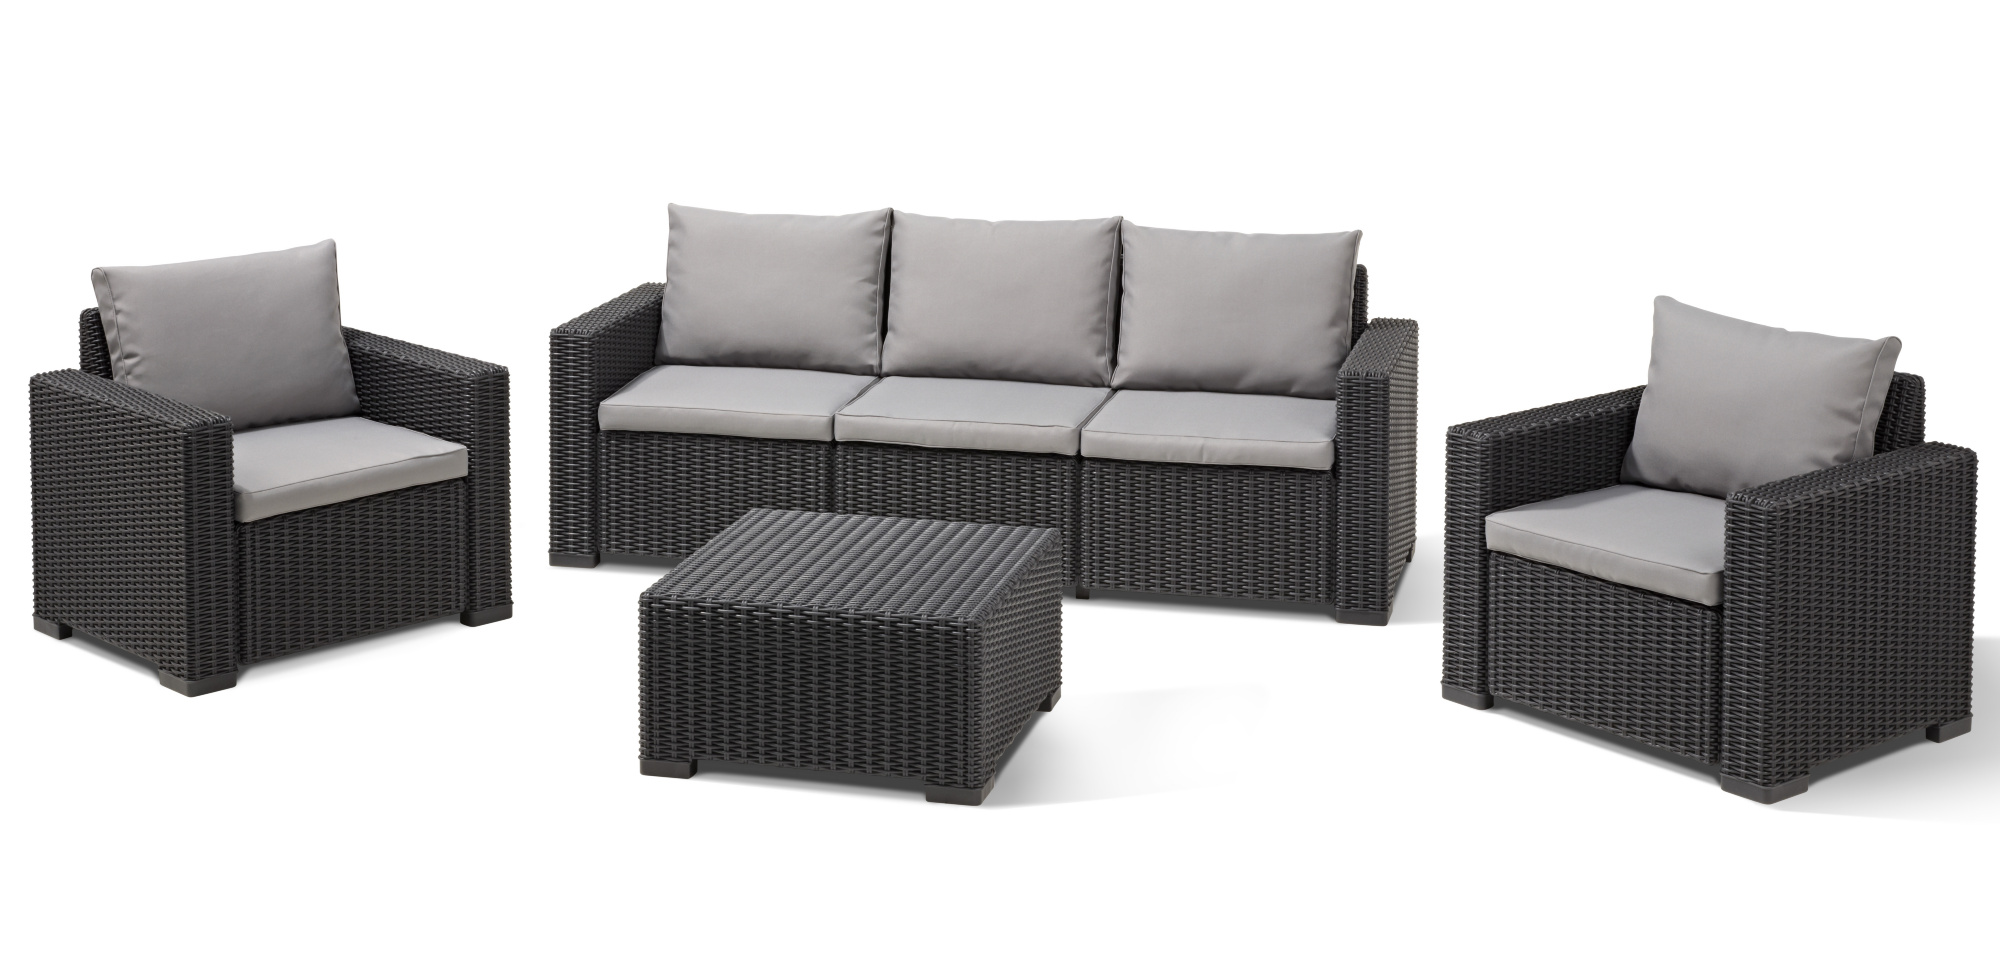 Allibert california lounge set graphite three seater for Ensemble table et chaise rotin